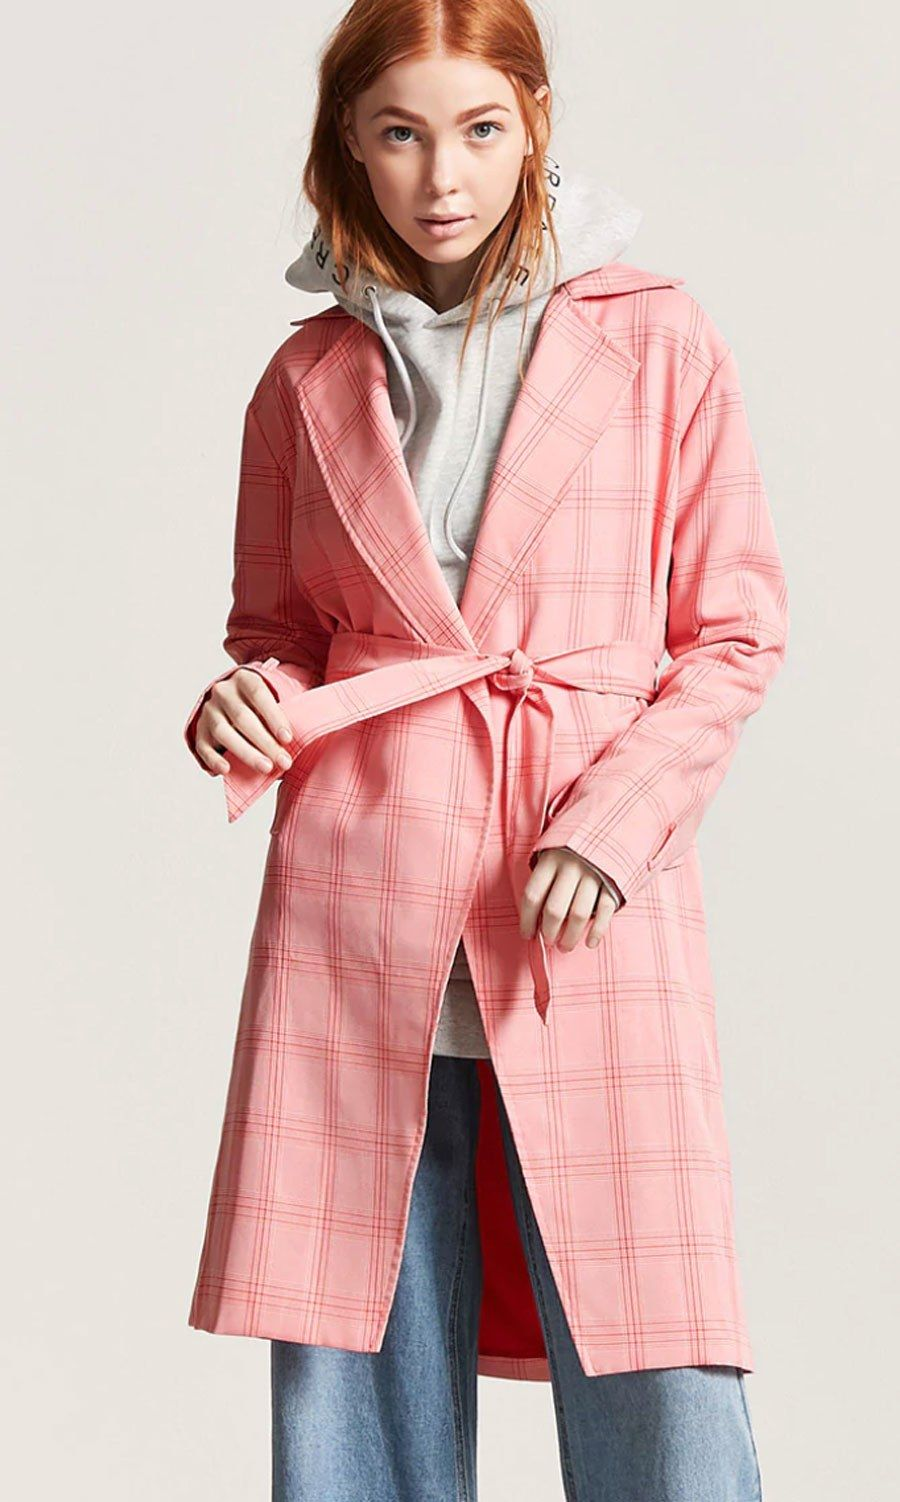 73930ea6ba5c 27 Affordable Trench Coats to Buy Right Now